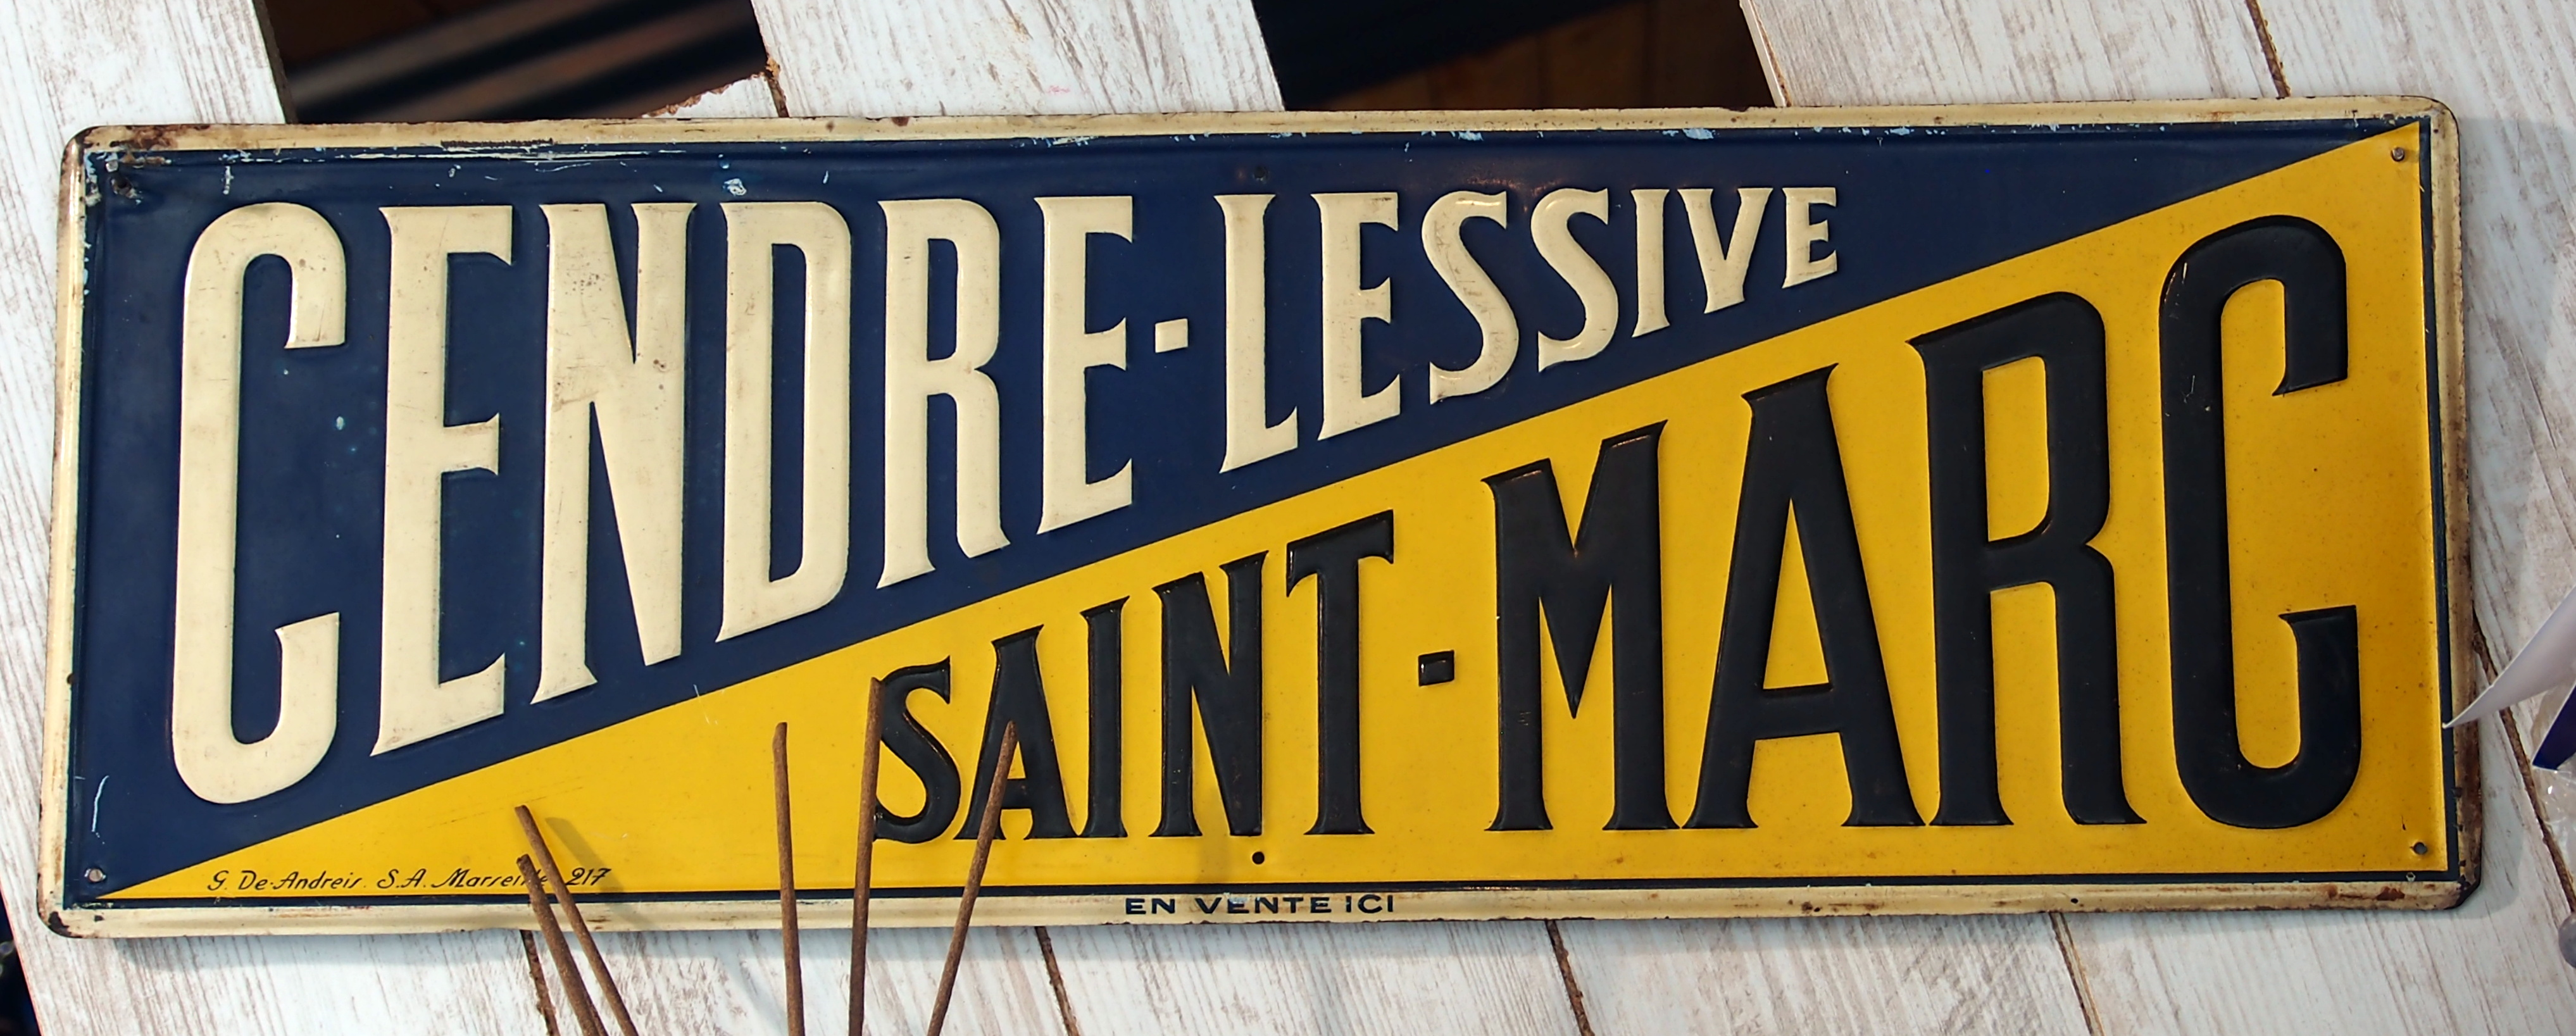 File cendre lessive saint marc advertising sign jpg - Lessive saint marc oxydrine ...